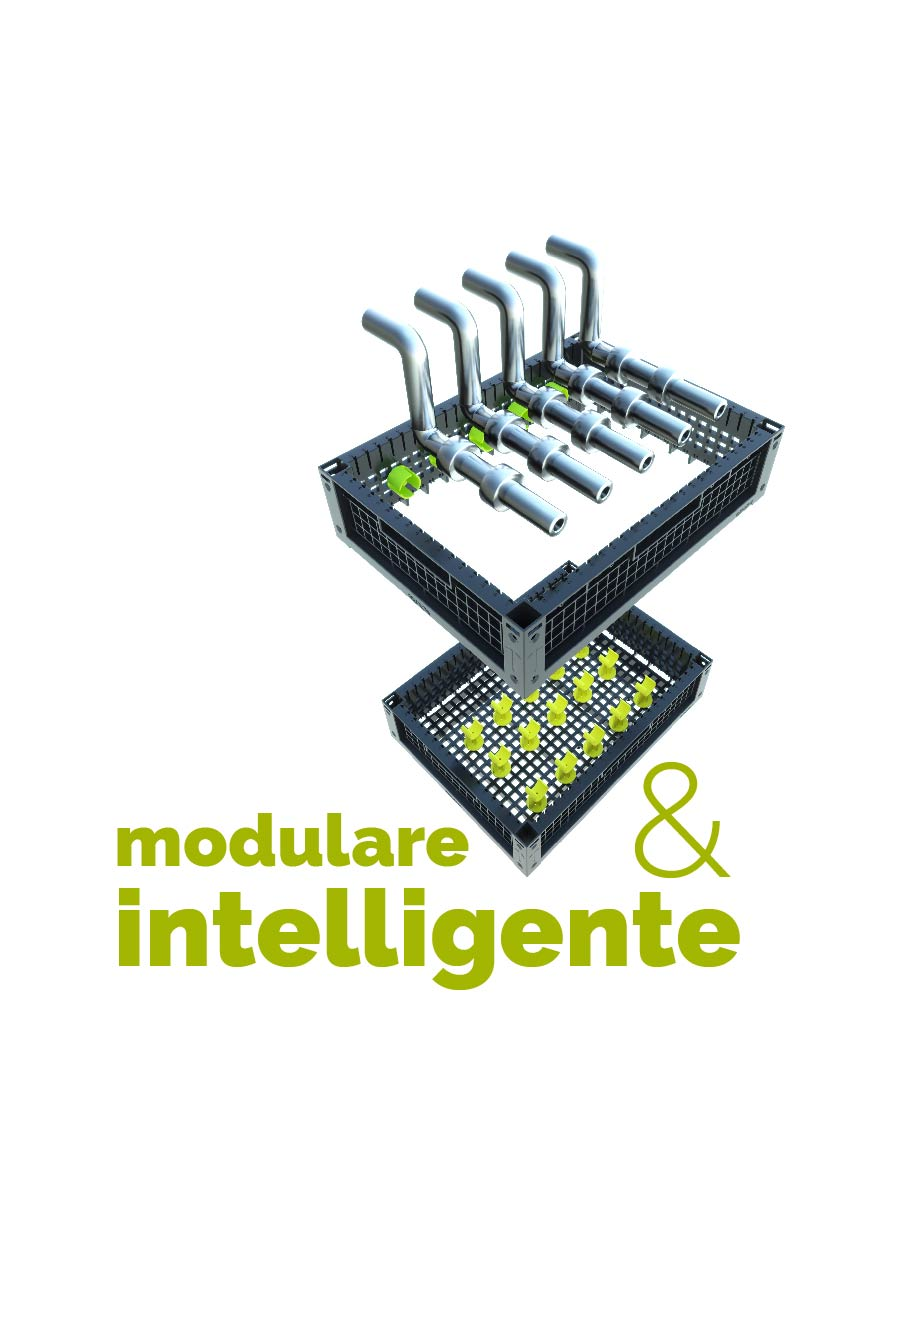 Modulare e intelligente